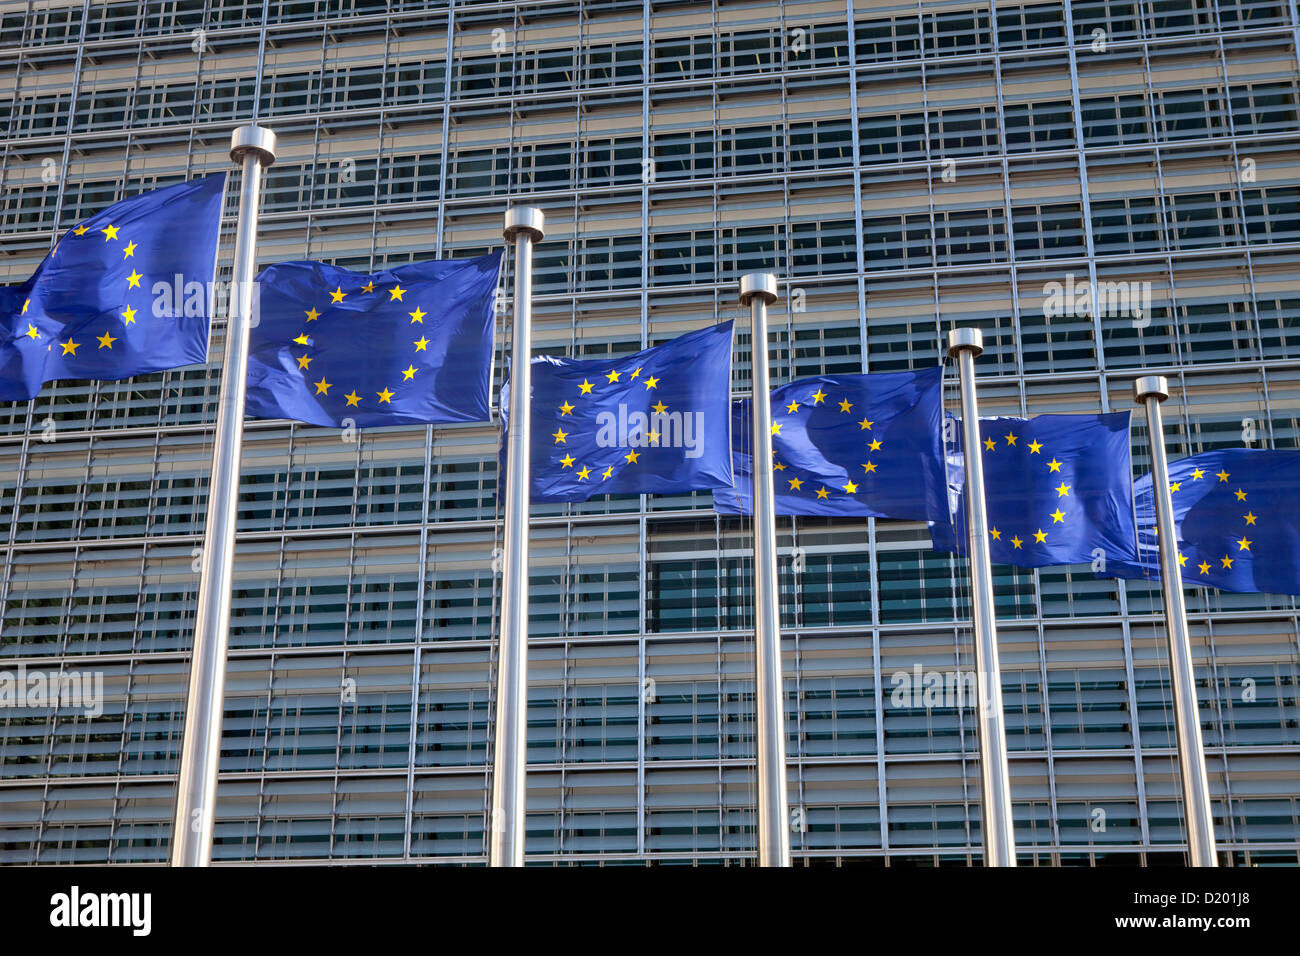 Brussels, Belgium European flags in front of the Berlaymont building - Stock Image